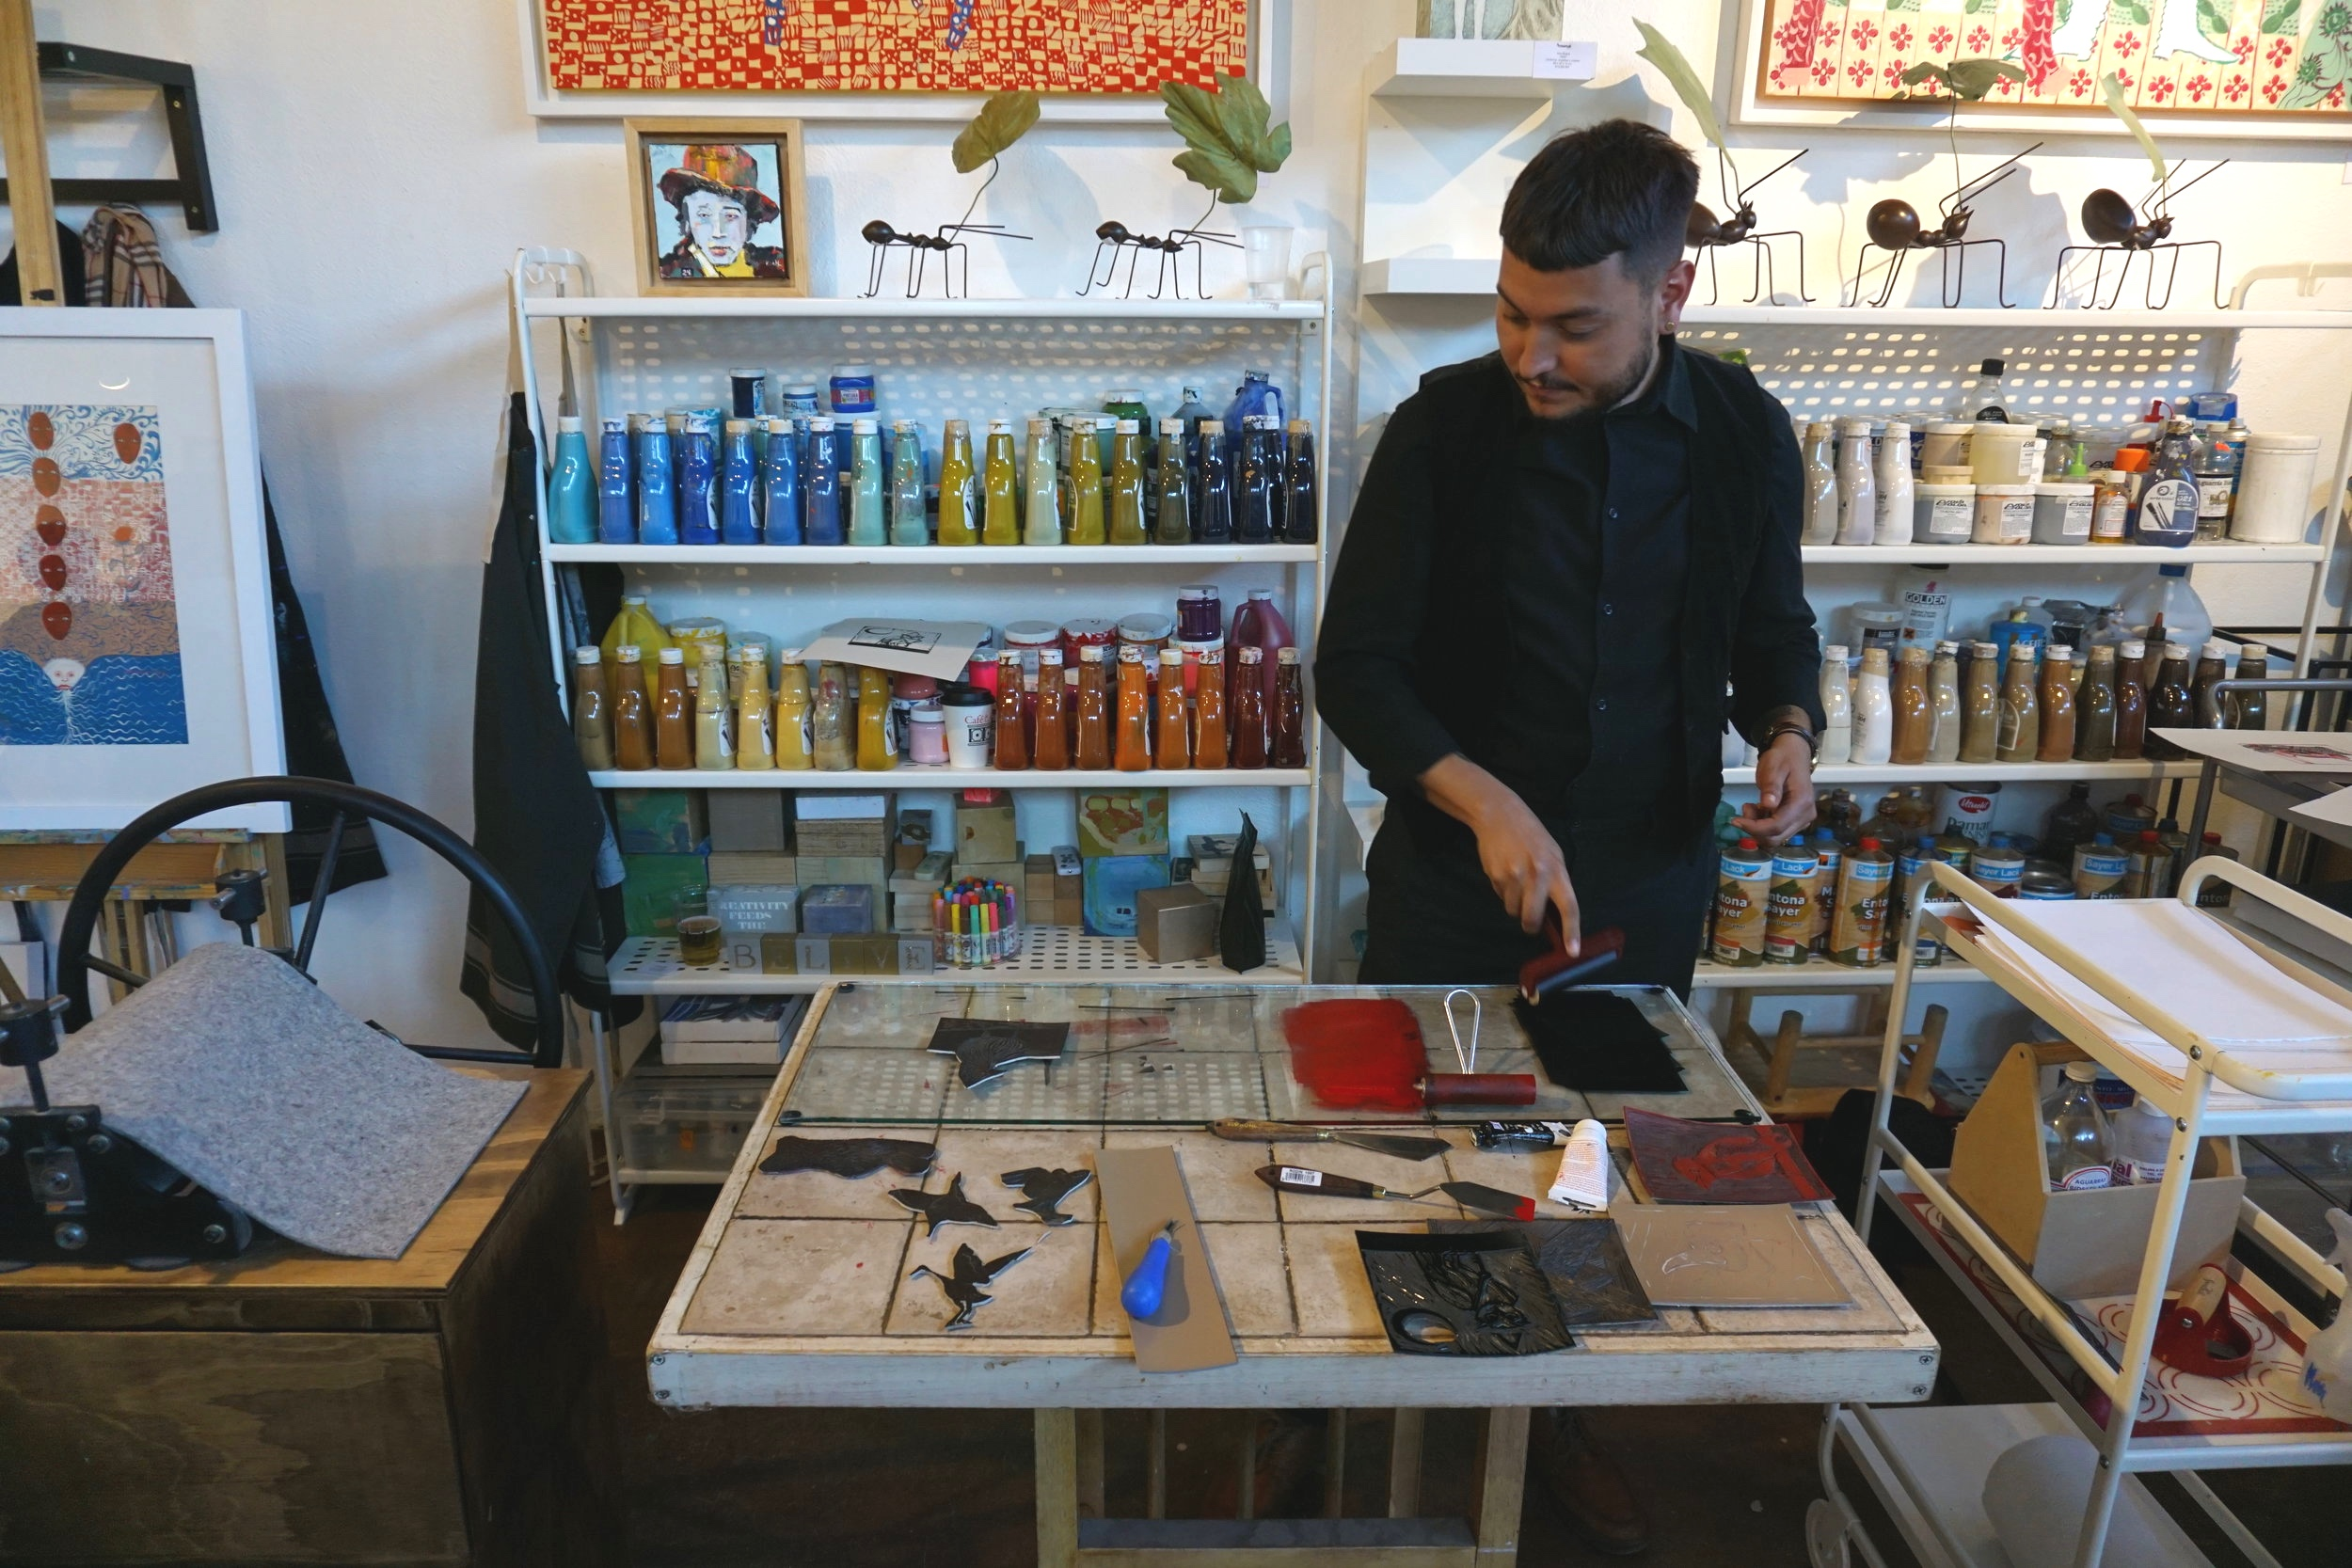 Artist Lorenzo Nuñez working on a linoleum design